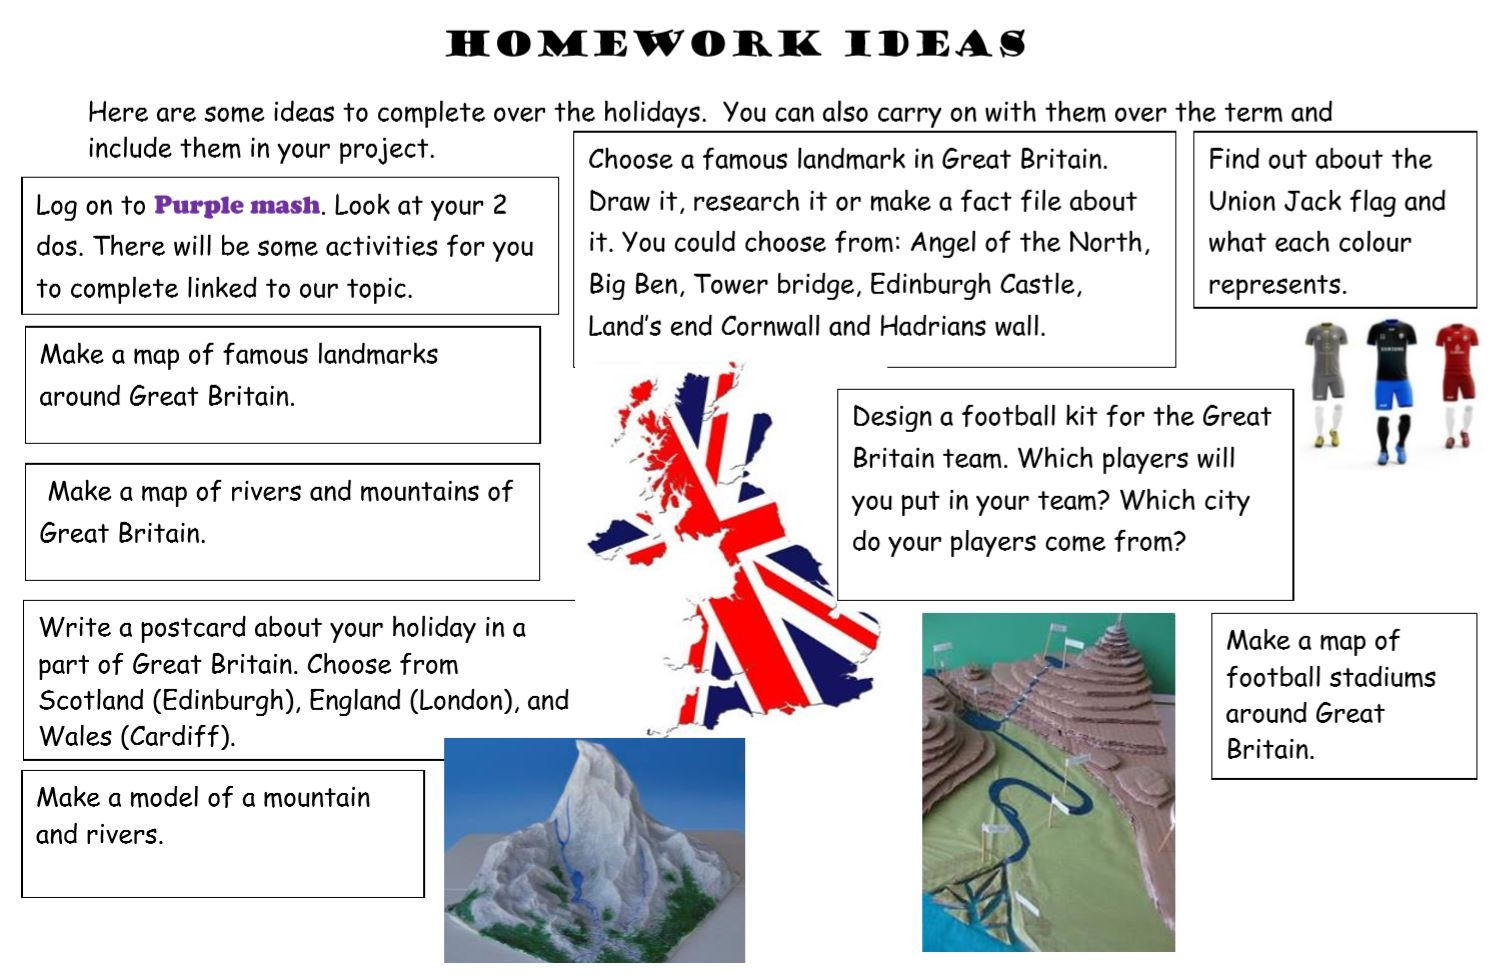 great britain homework ideas